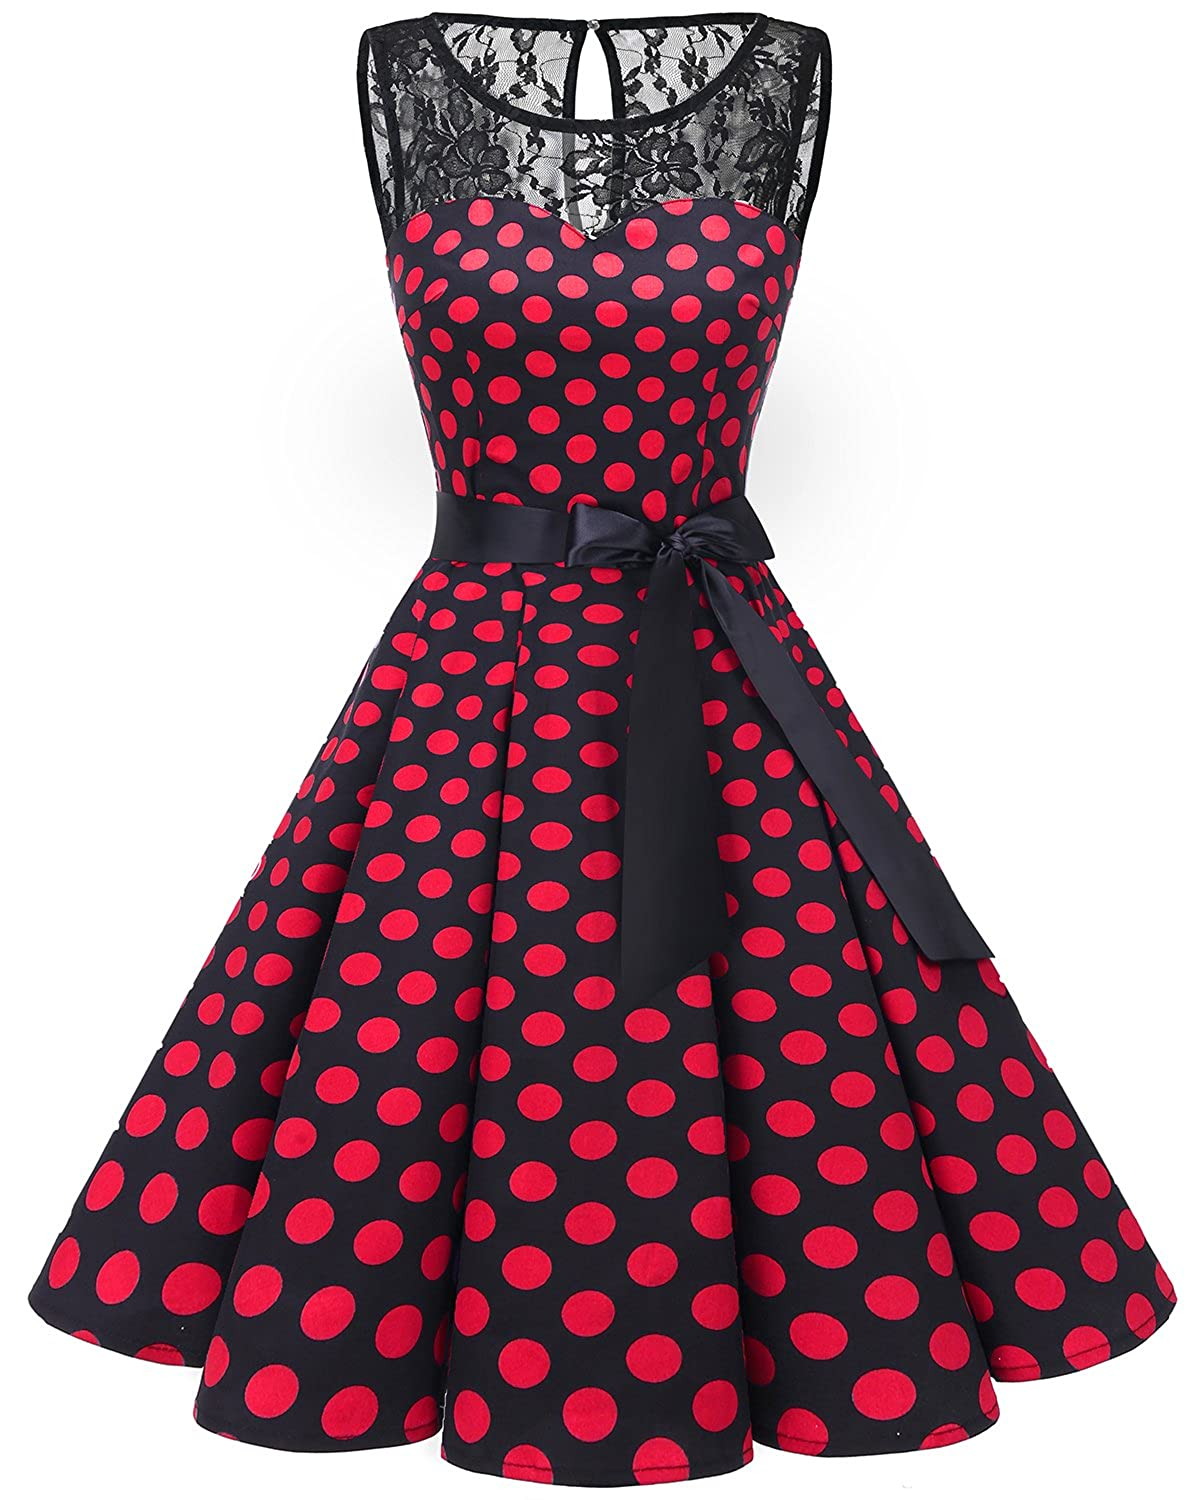 abbd2c631d49 Bbonlinedress Women's 1950s Vintage Rockabilly Swing Dress Lace Cocktail  Prom Party Dress at Amazon Women's Clothing store: